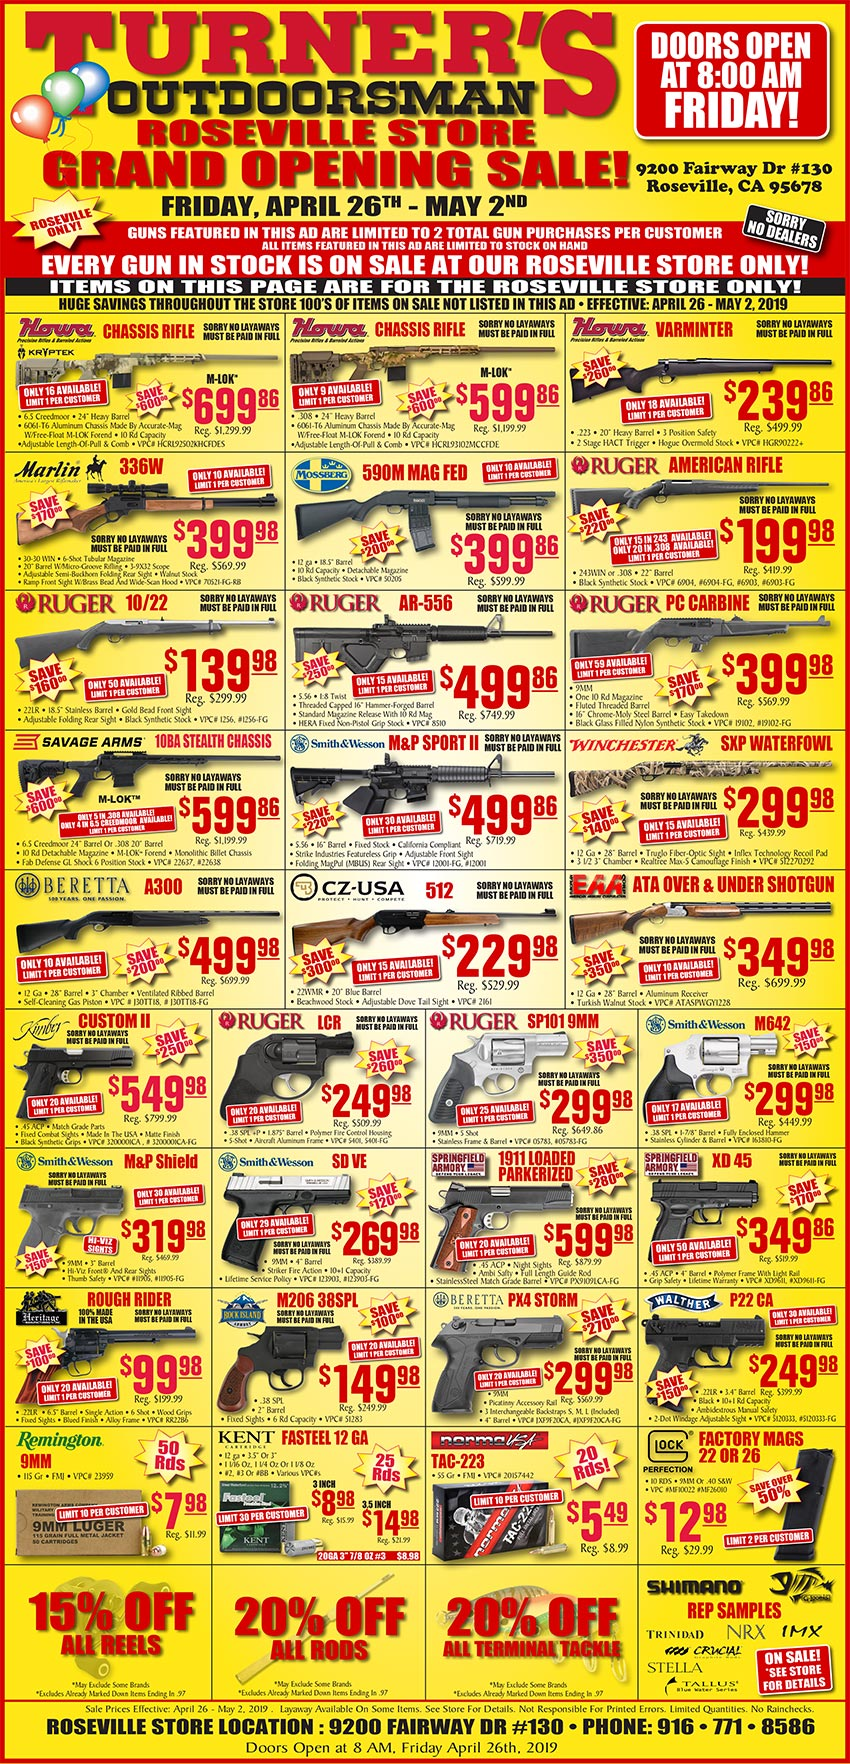 Roseville Grand Opening Sale - Starts Friday, April 26th at 8am!